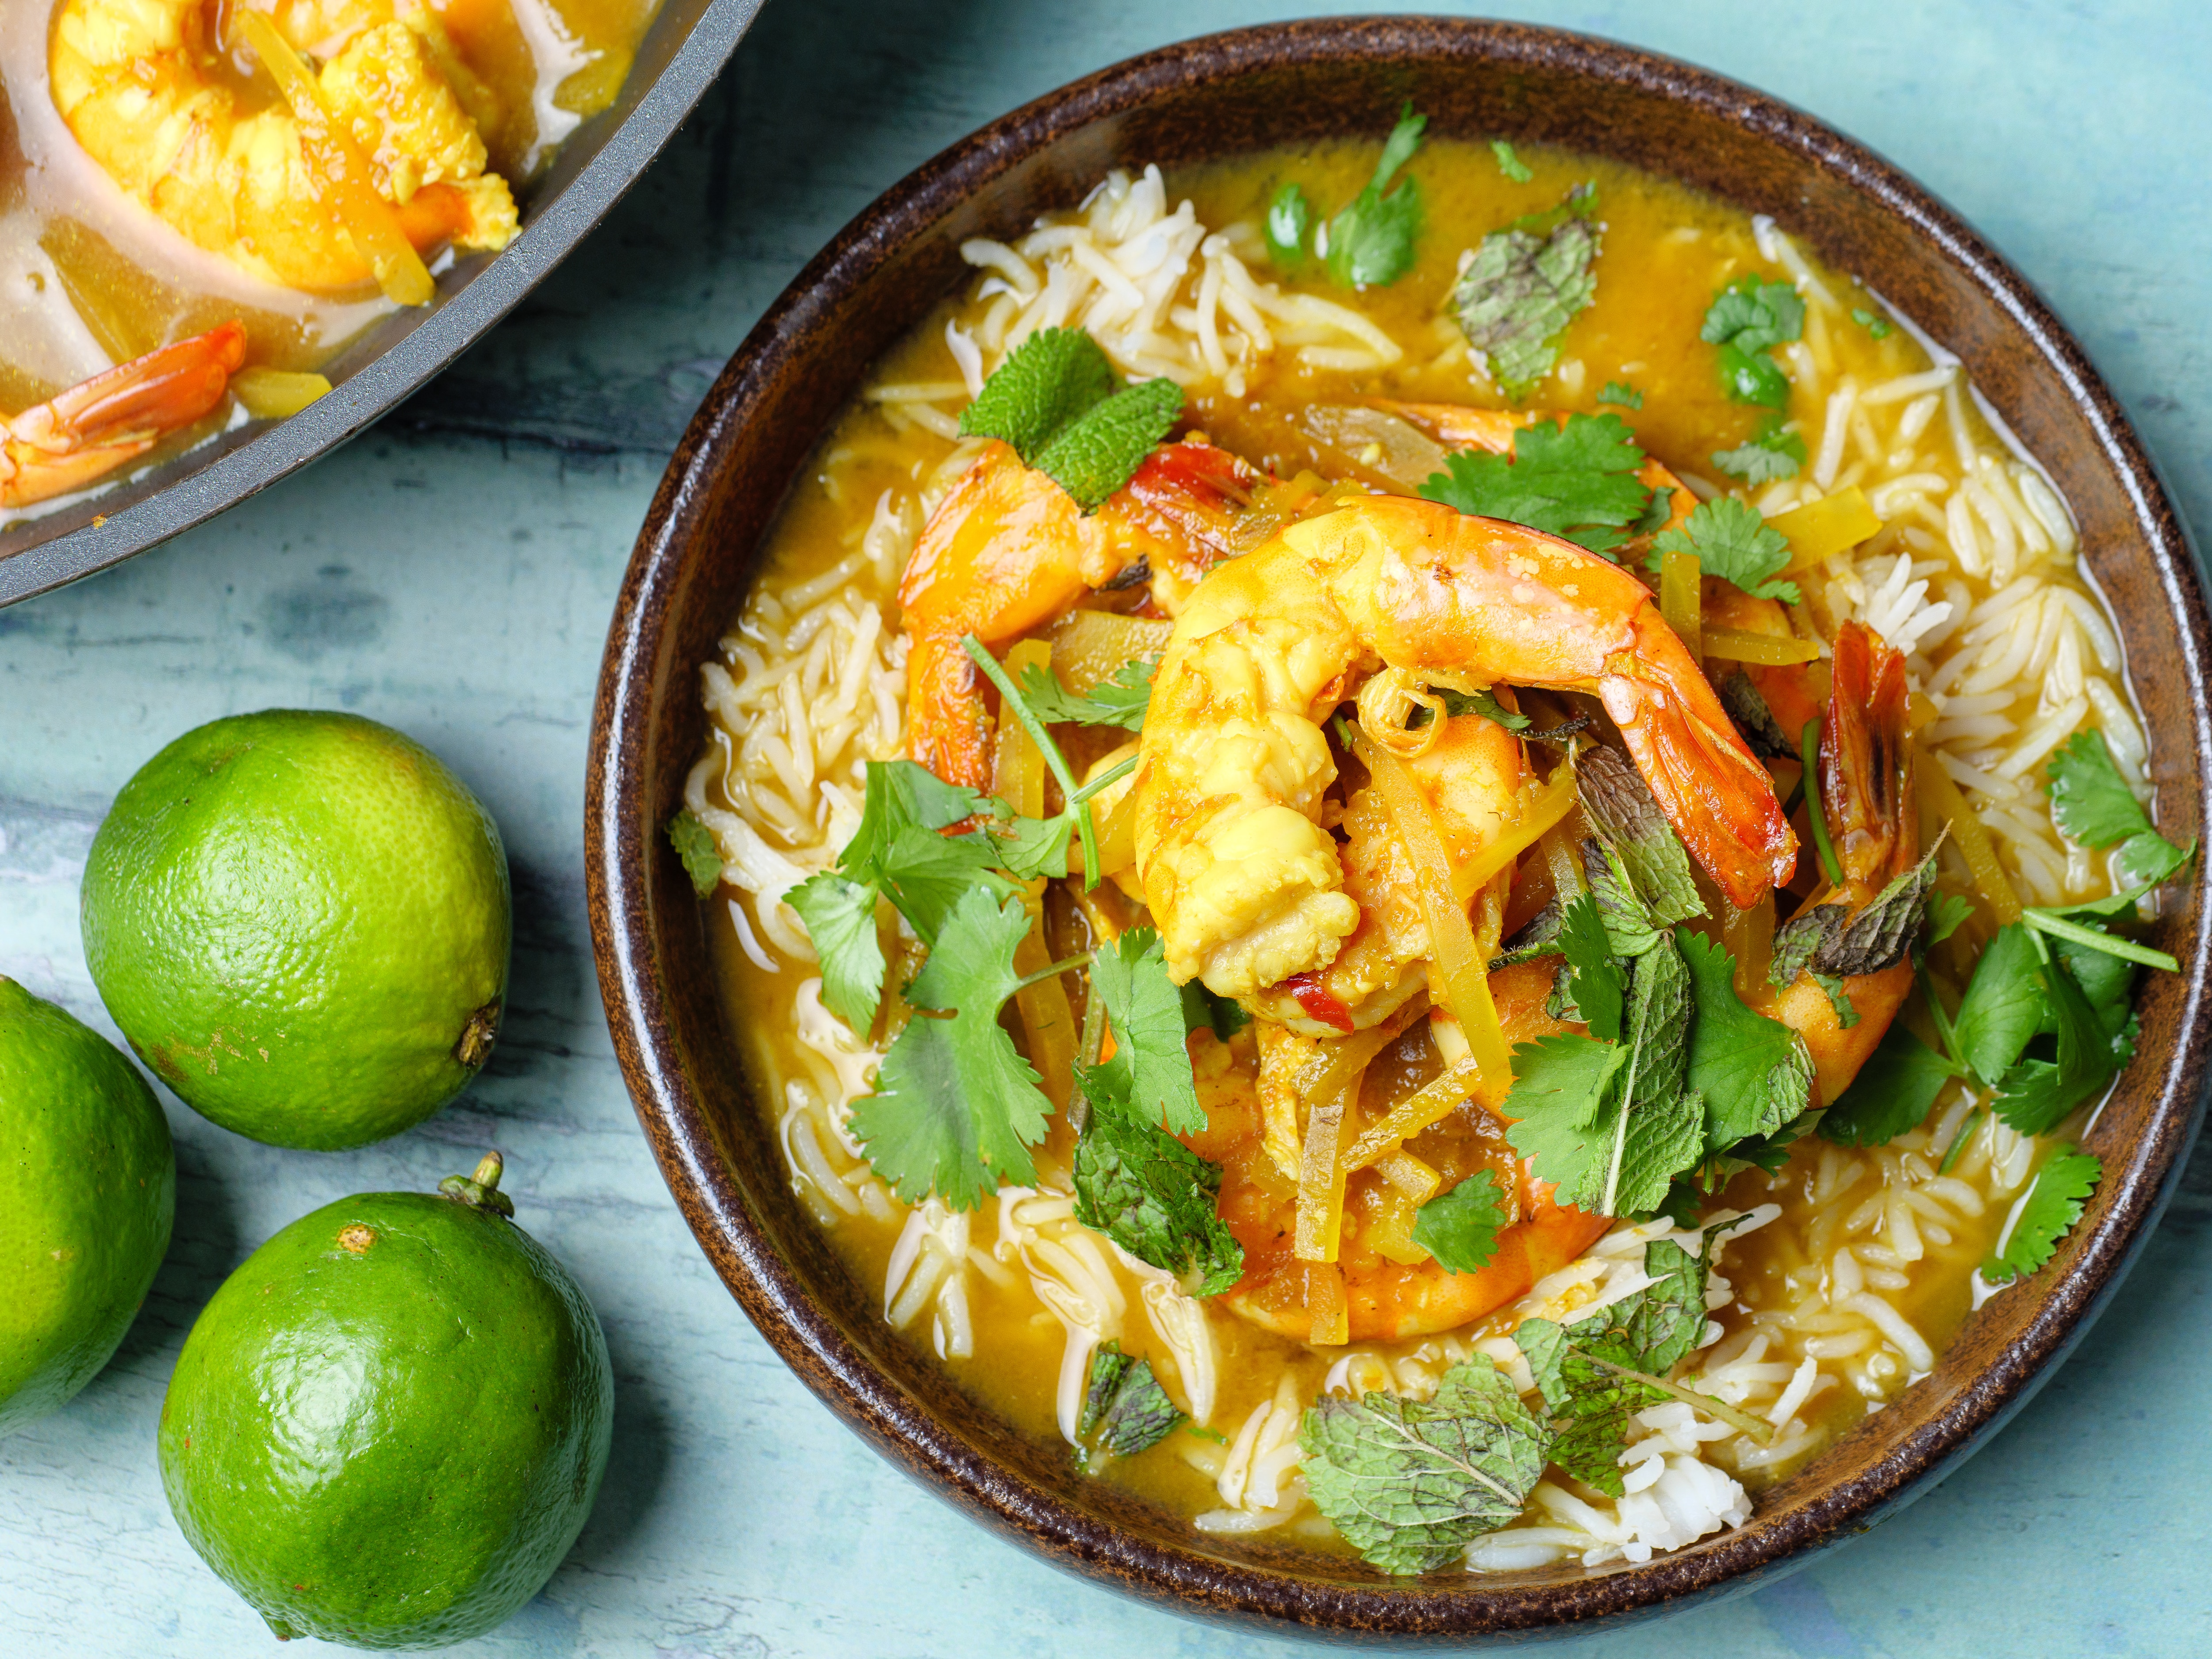 Sour curry with prawns